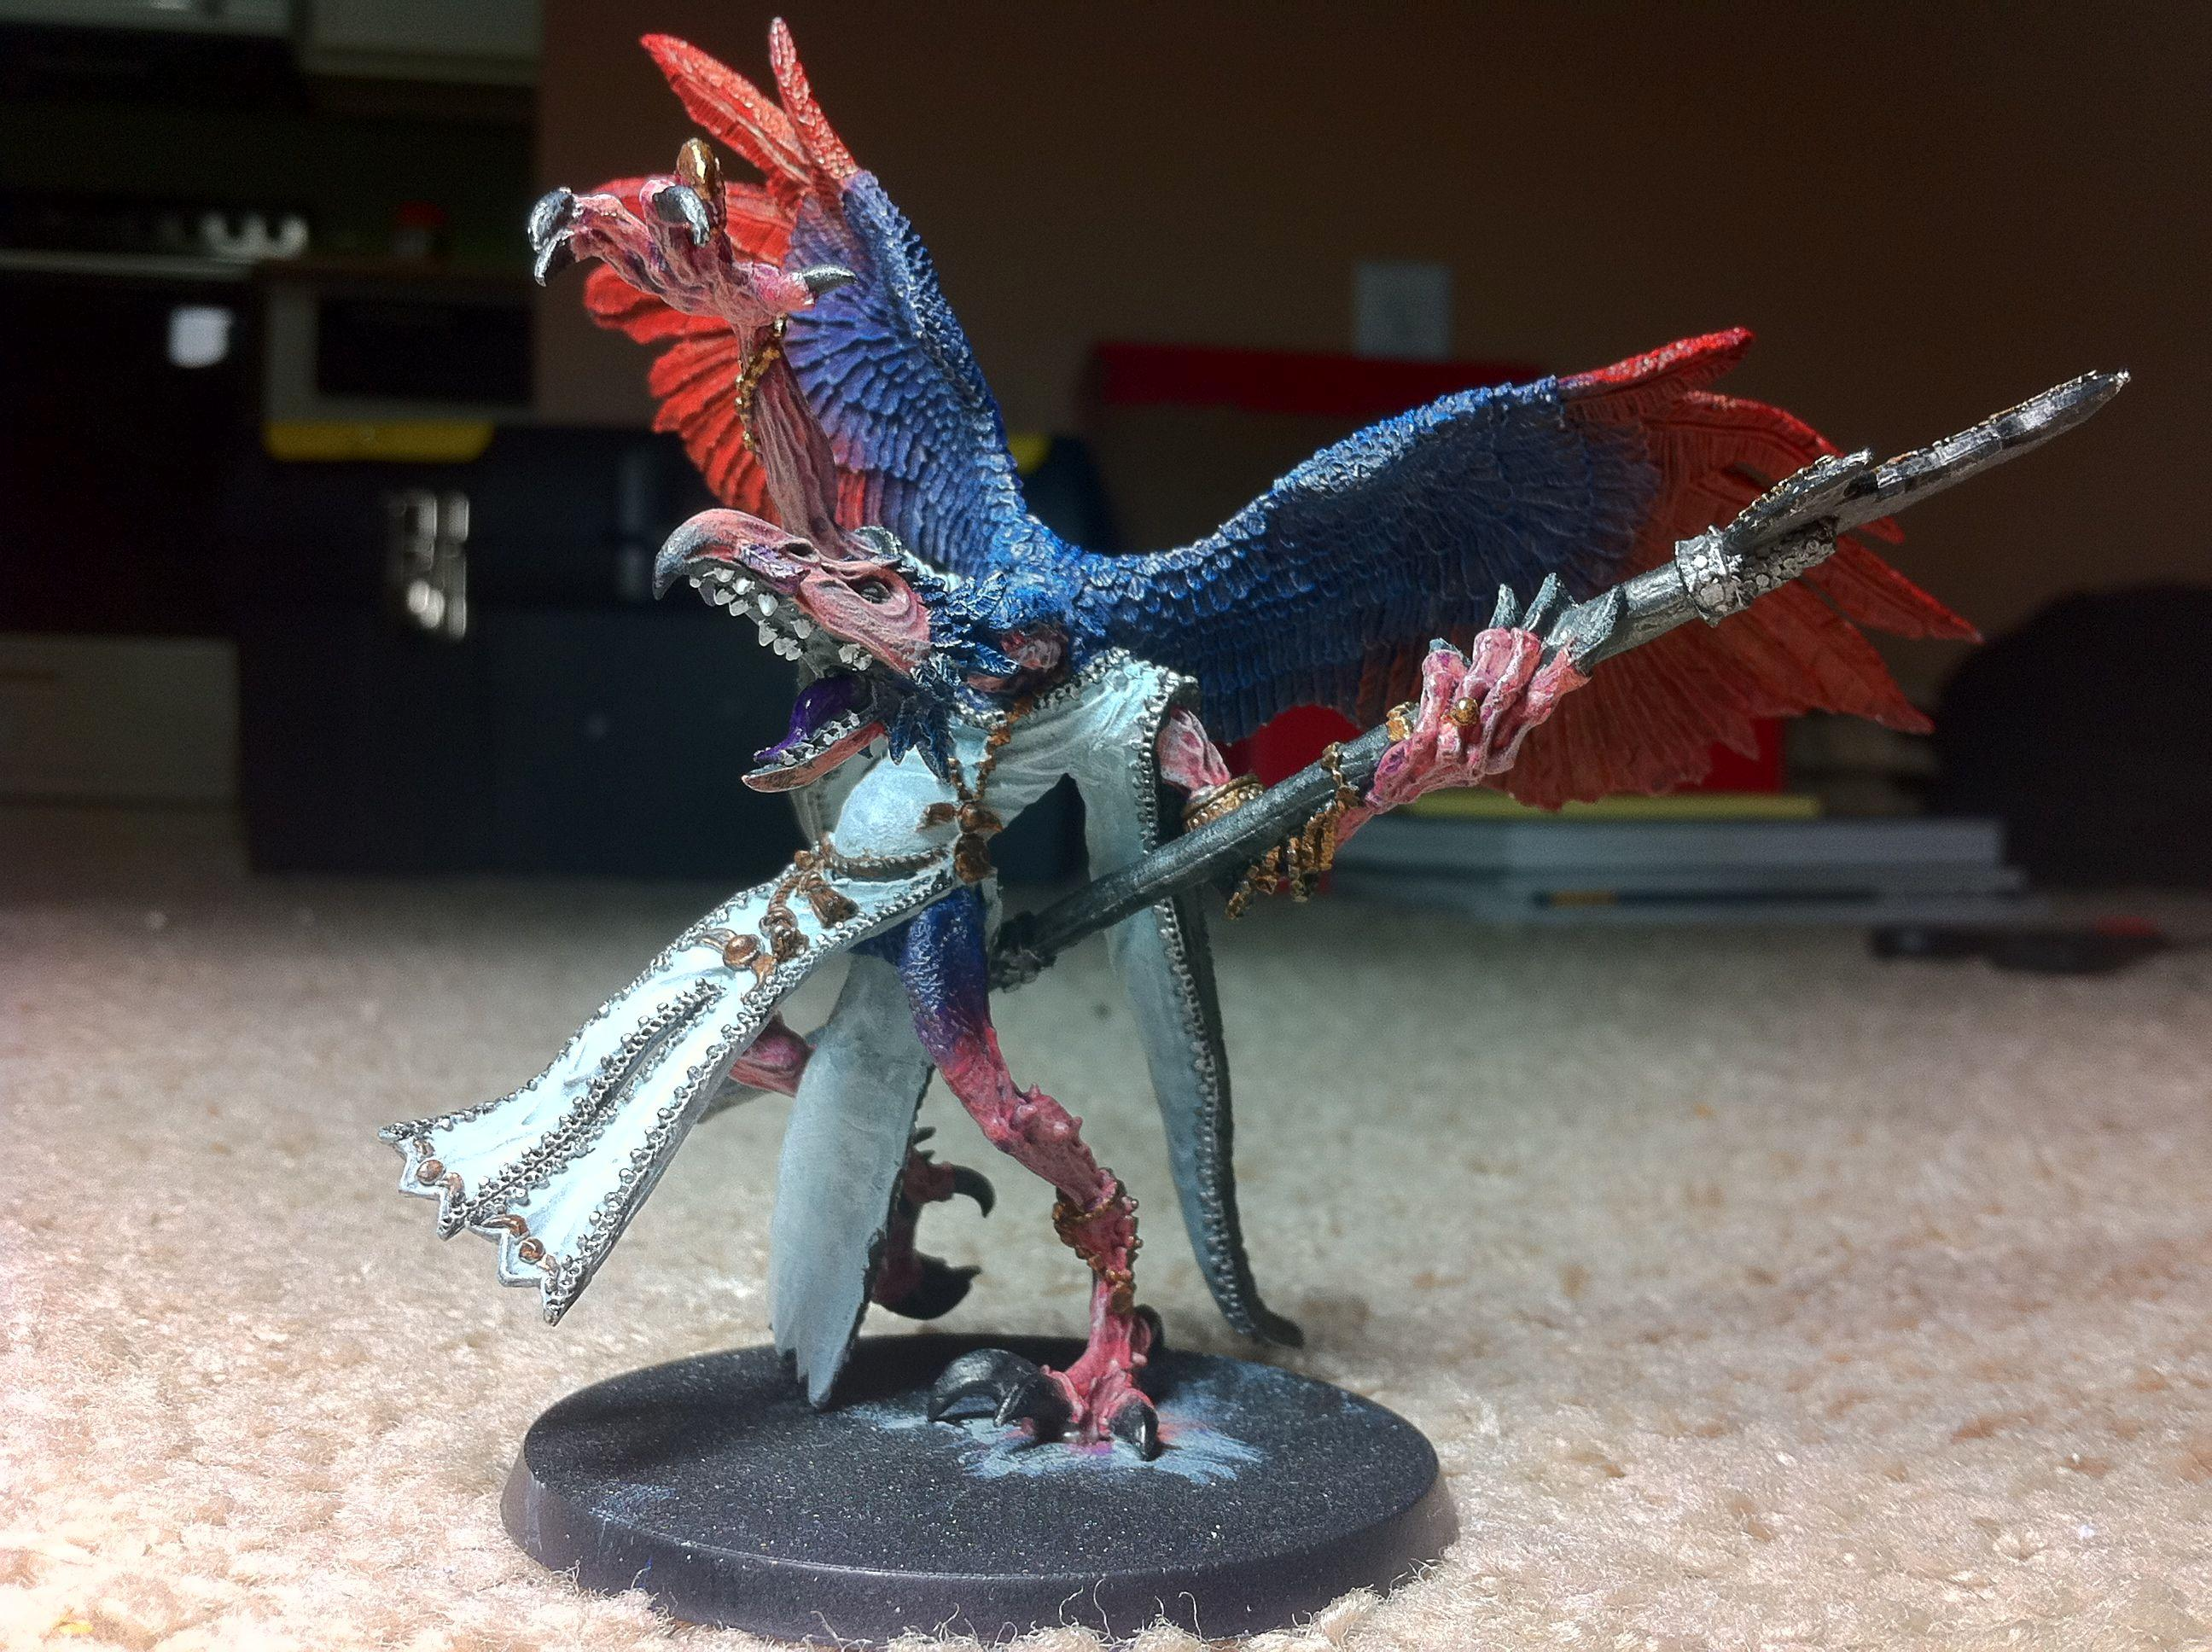 Chaos, Chaos Space Marines, Daemons, Greater Daemon, Lord Of Change, Tzeentch, Warhammer 40,000, Wfb